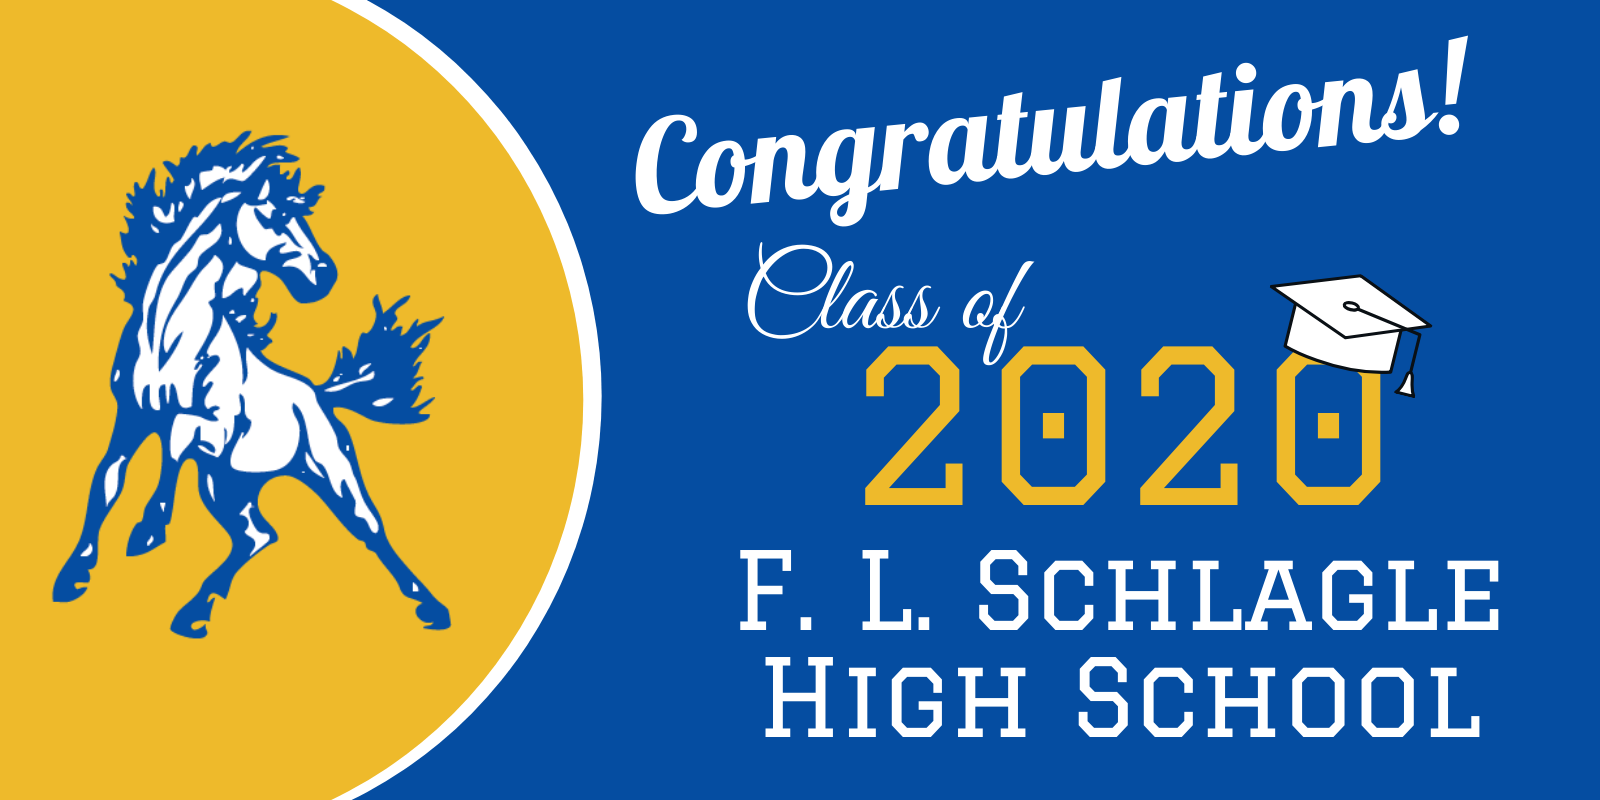 Congratulations Class of 2020 F. L. Schalgle High School